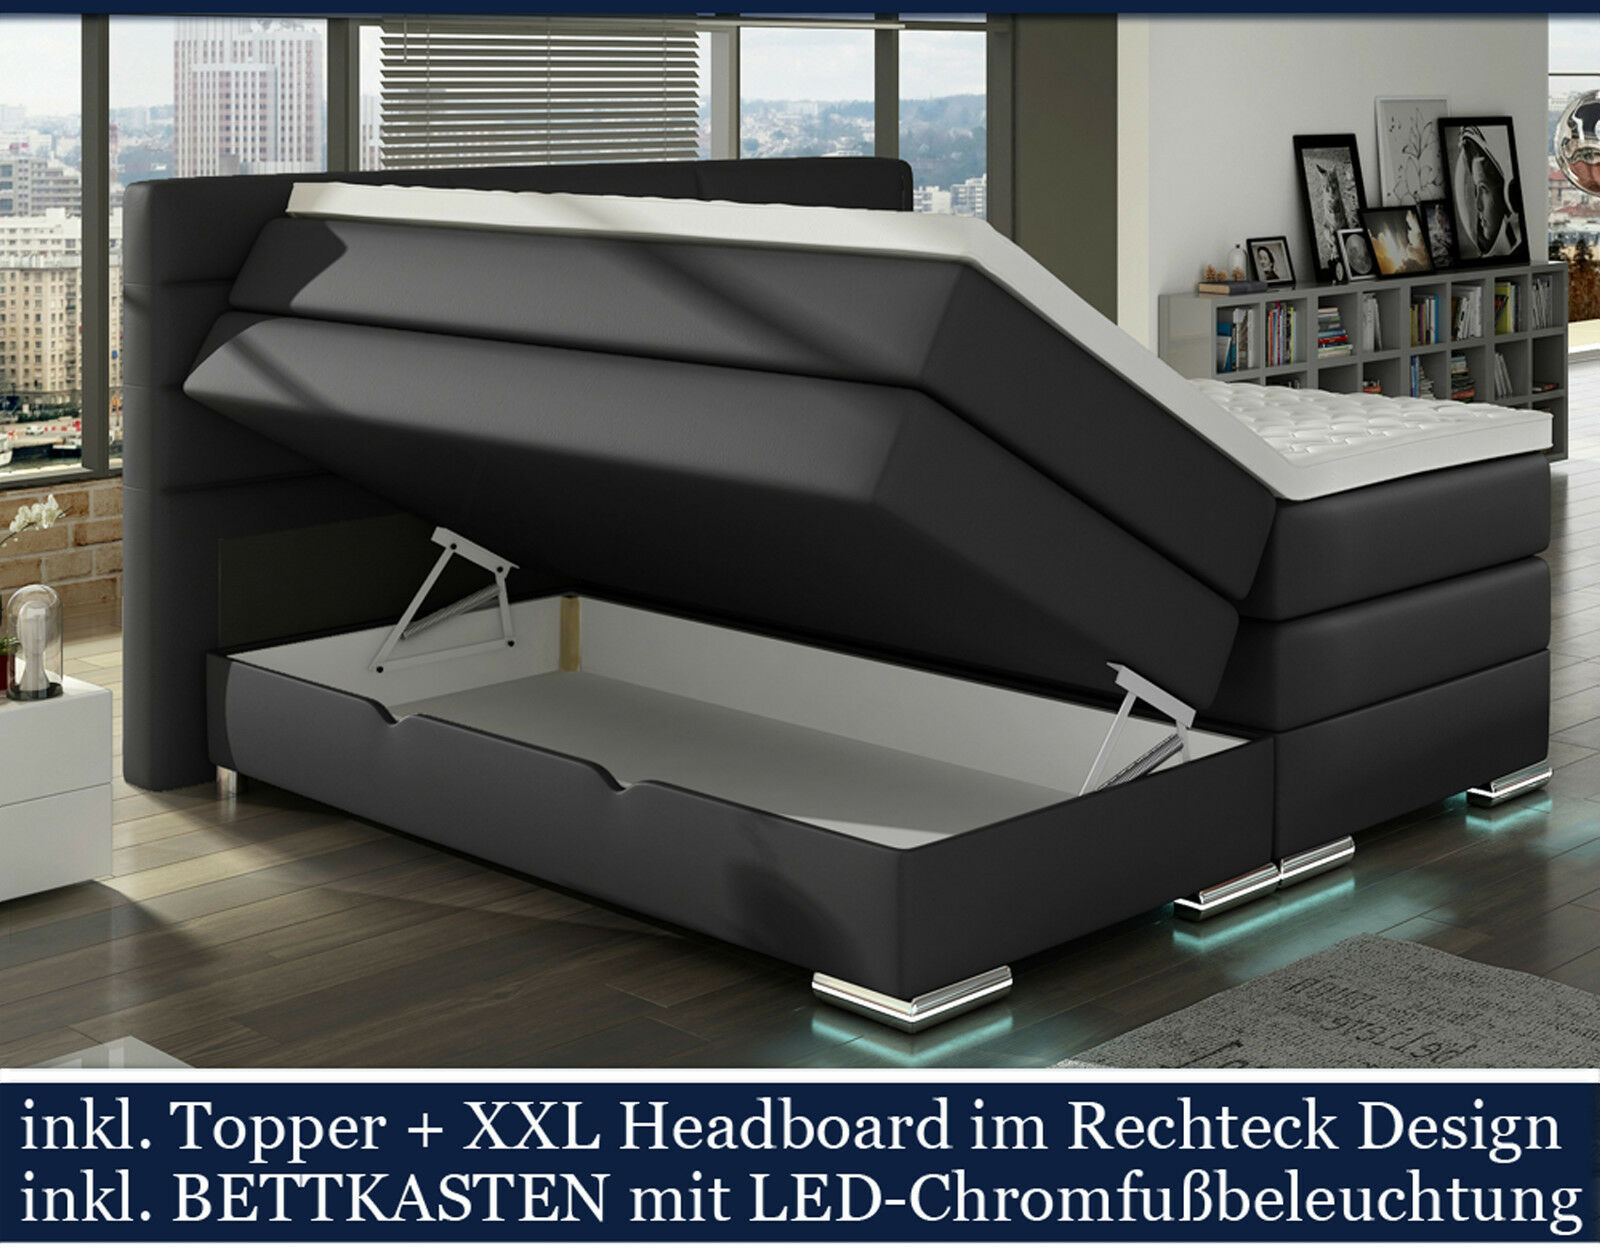 xxl boxspringbett mit bettkasten boxspring bett schwarz led 200x200 eur picclick de. Black Bedroom Furniture Sets. Home Design Ideas